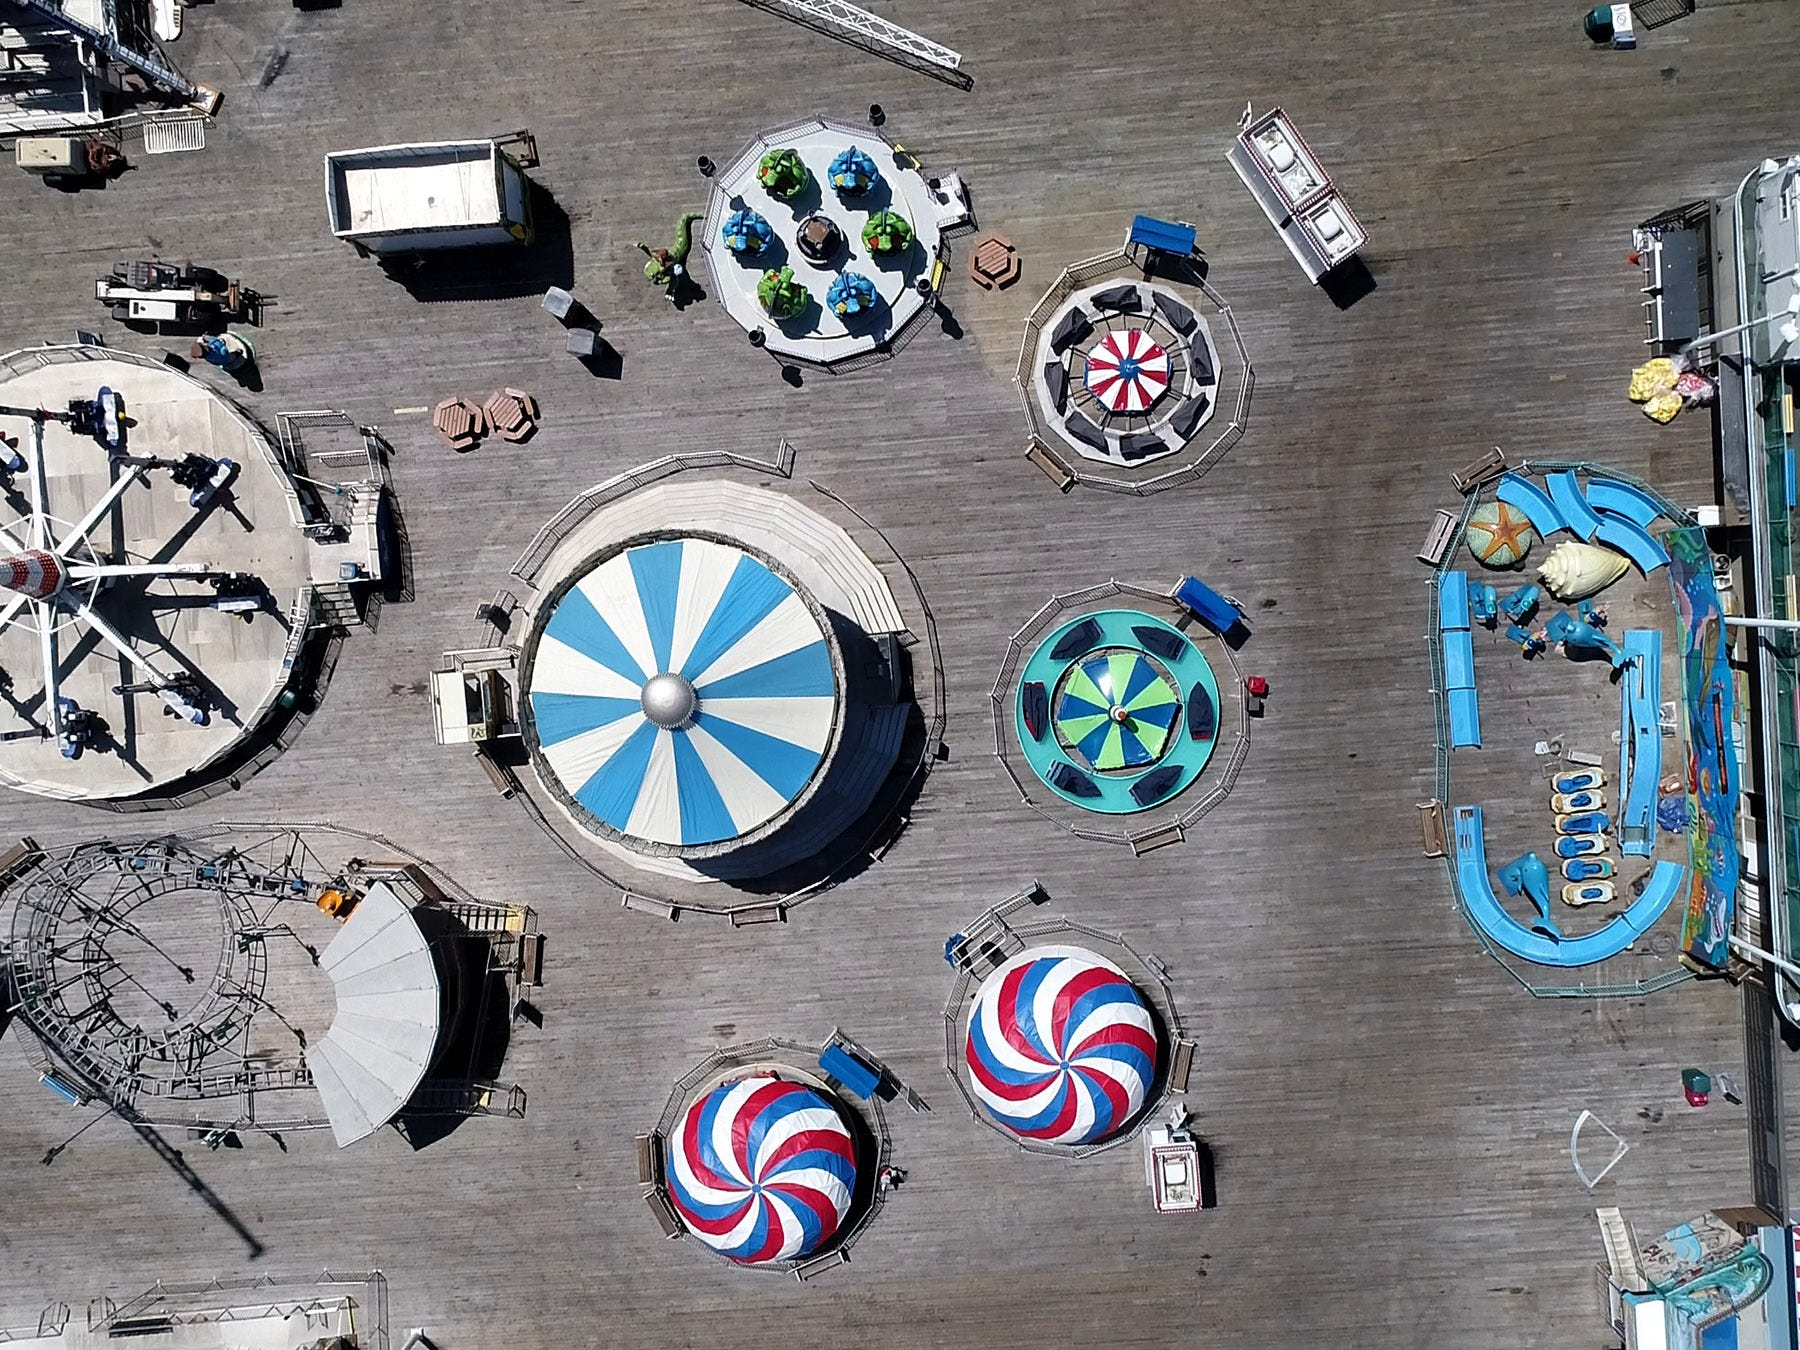 Rides are being prepared for the summer season on Seaside Heights' Casino Pier Monday, May 6, 2019.